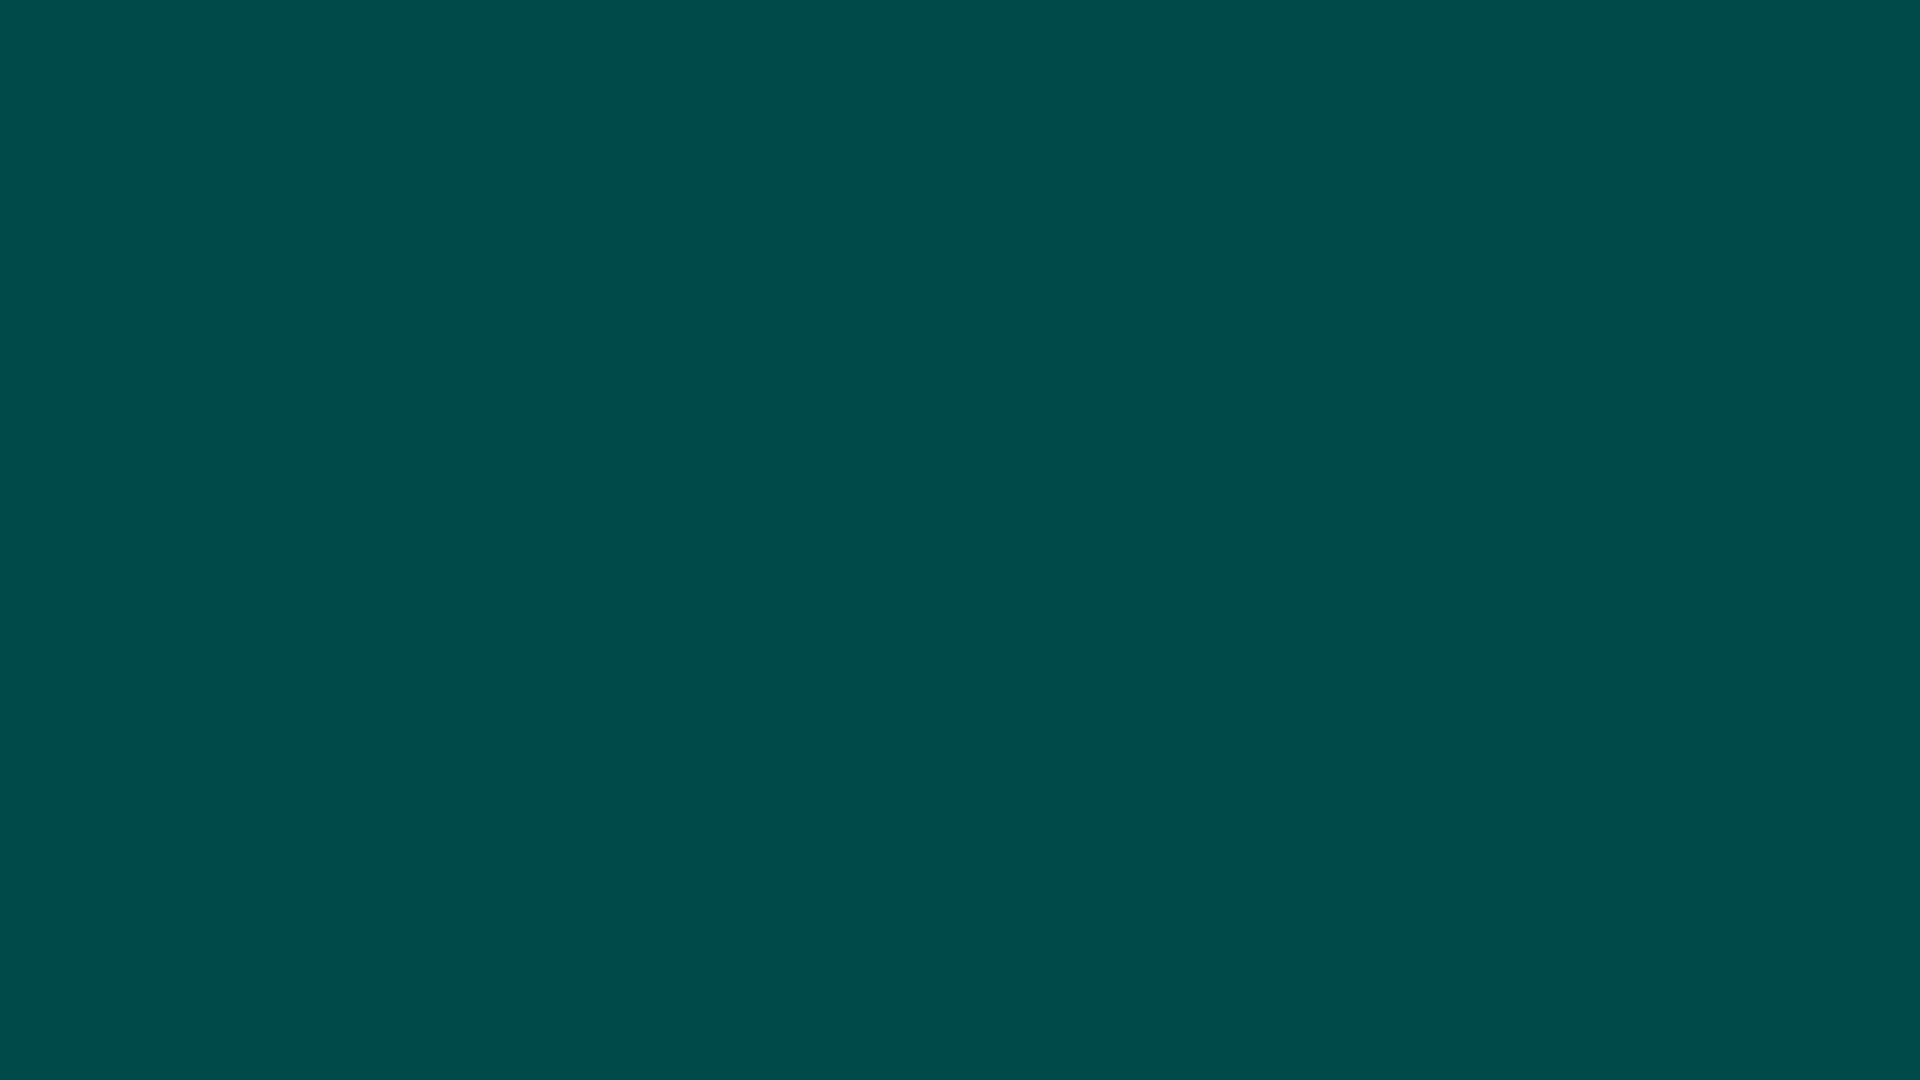 1920x1080 Deep Jungle Green Solid Color Background